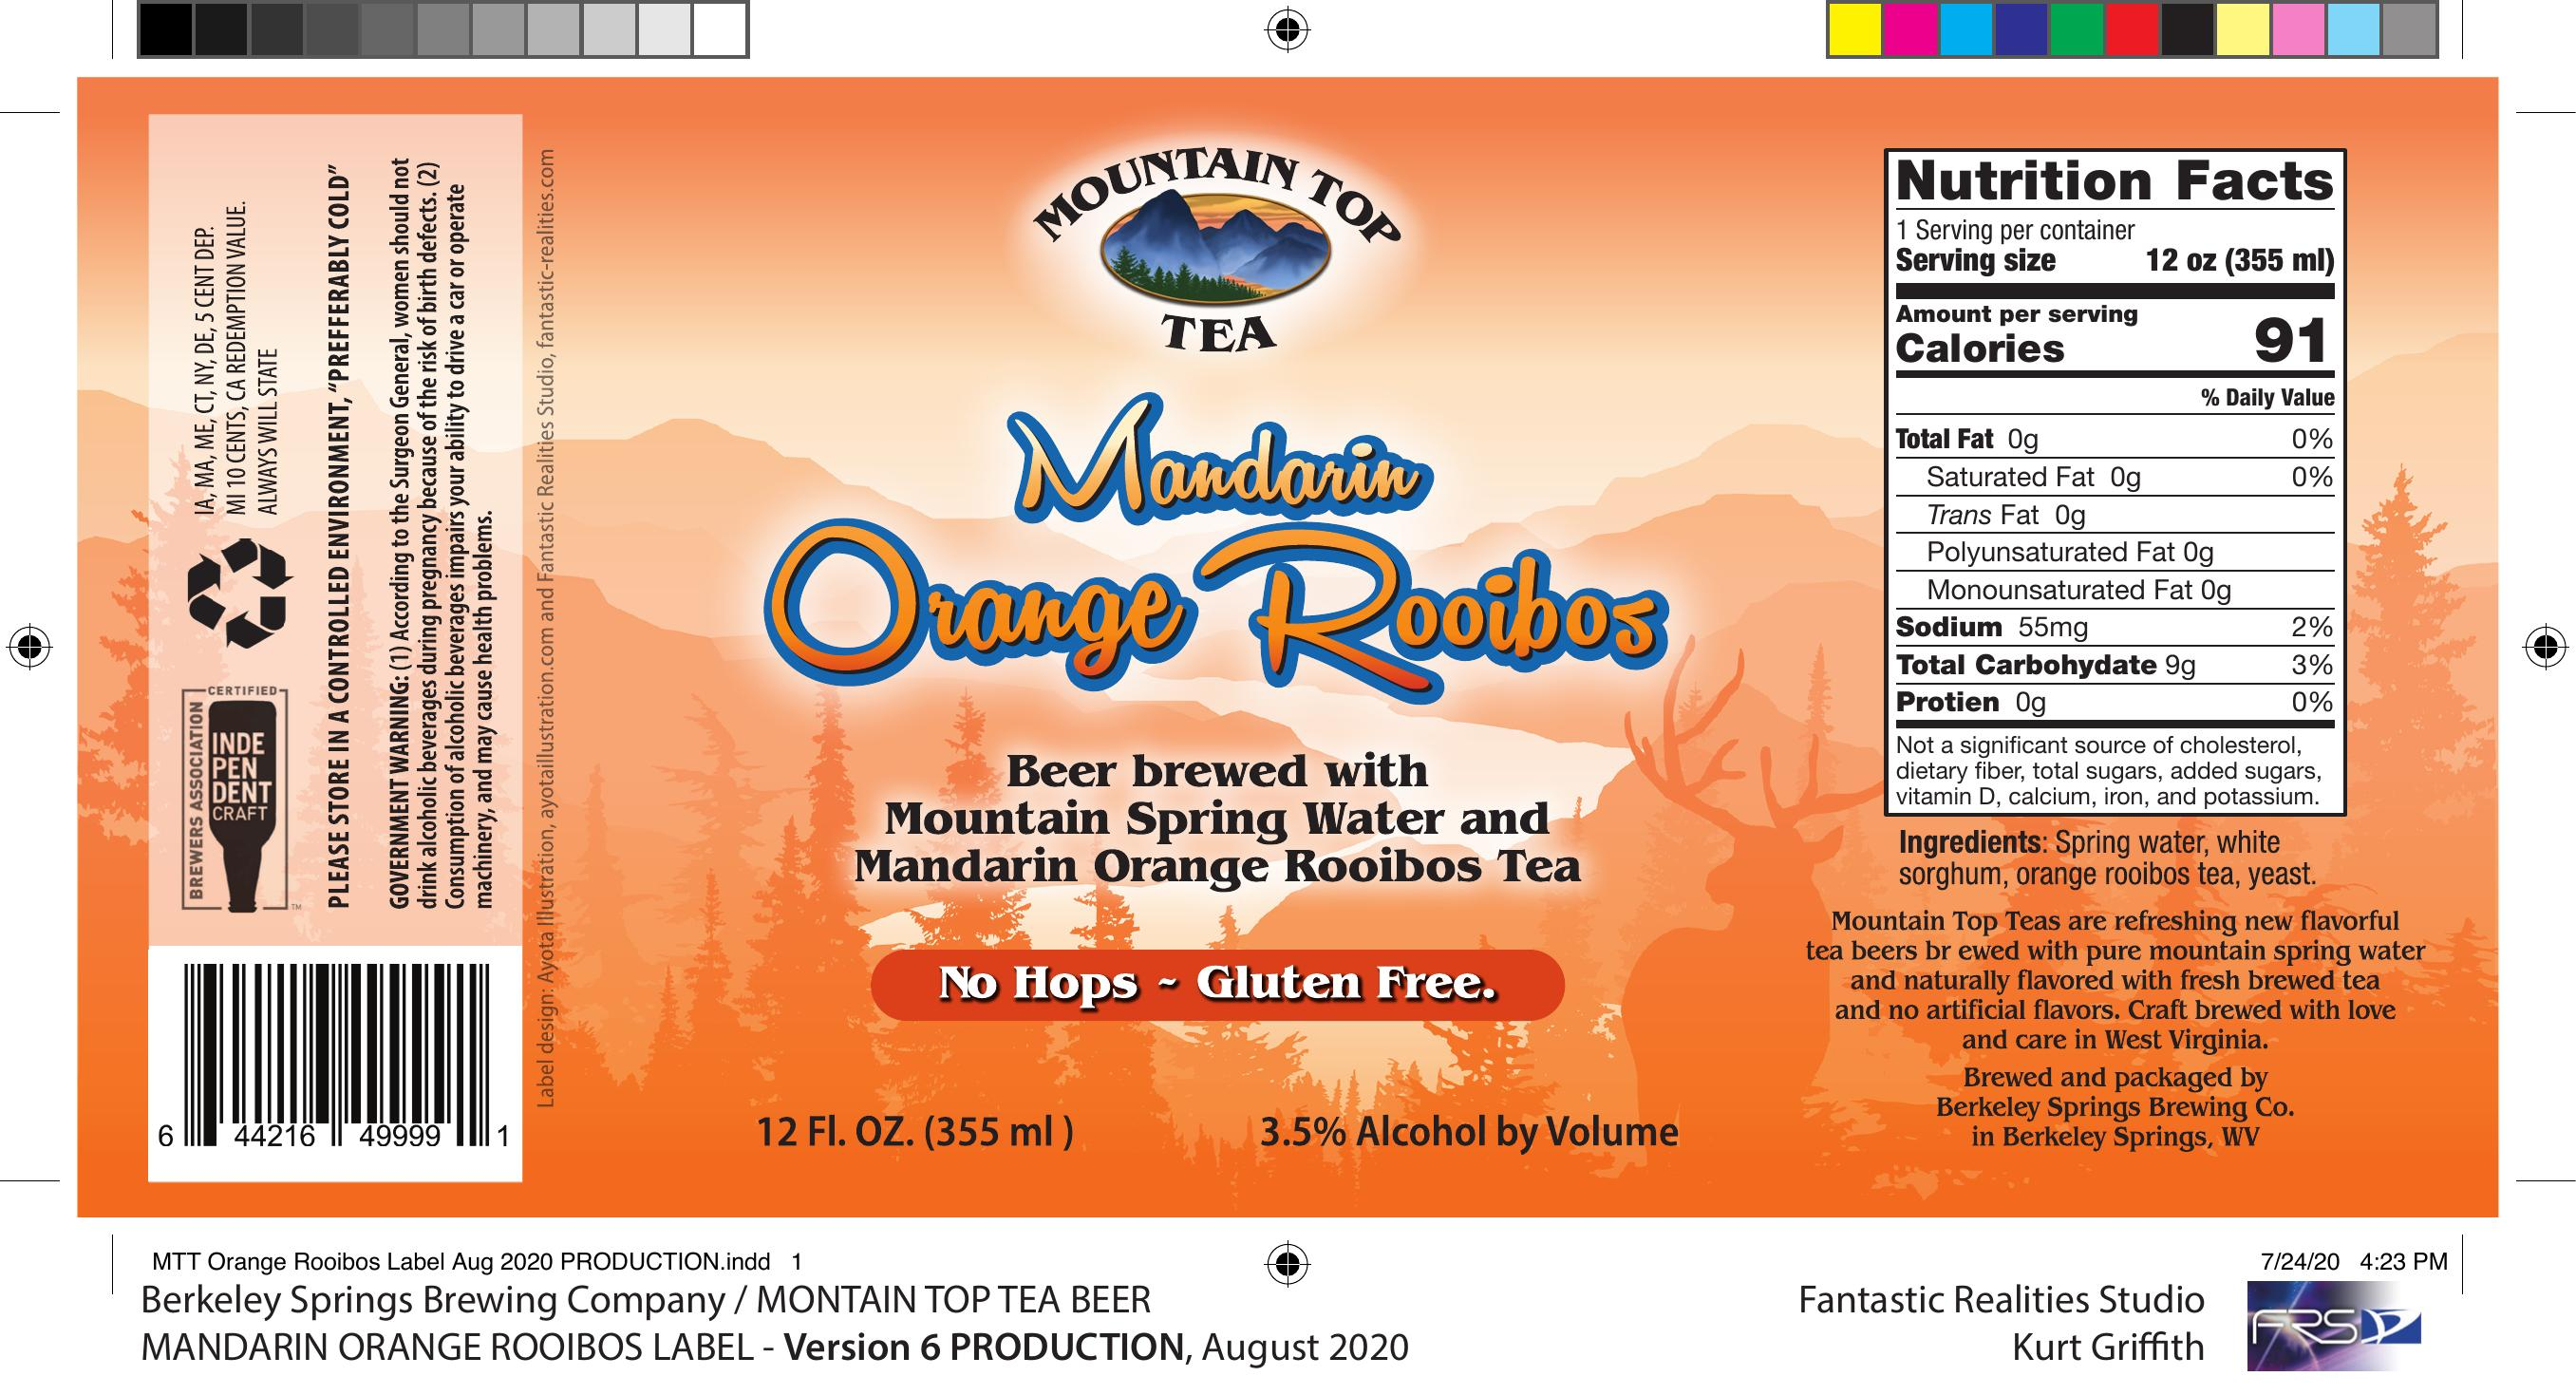 MTT Orange Rooibos Label Aug 2020 PRESS